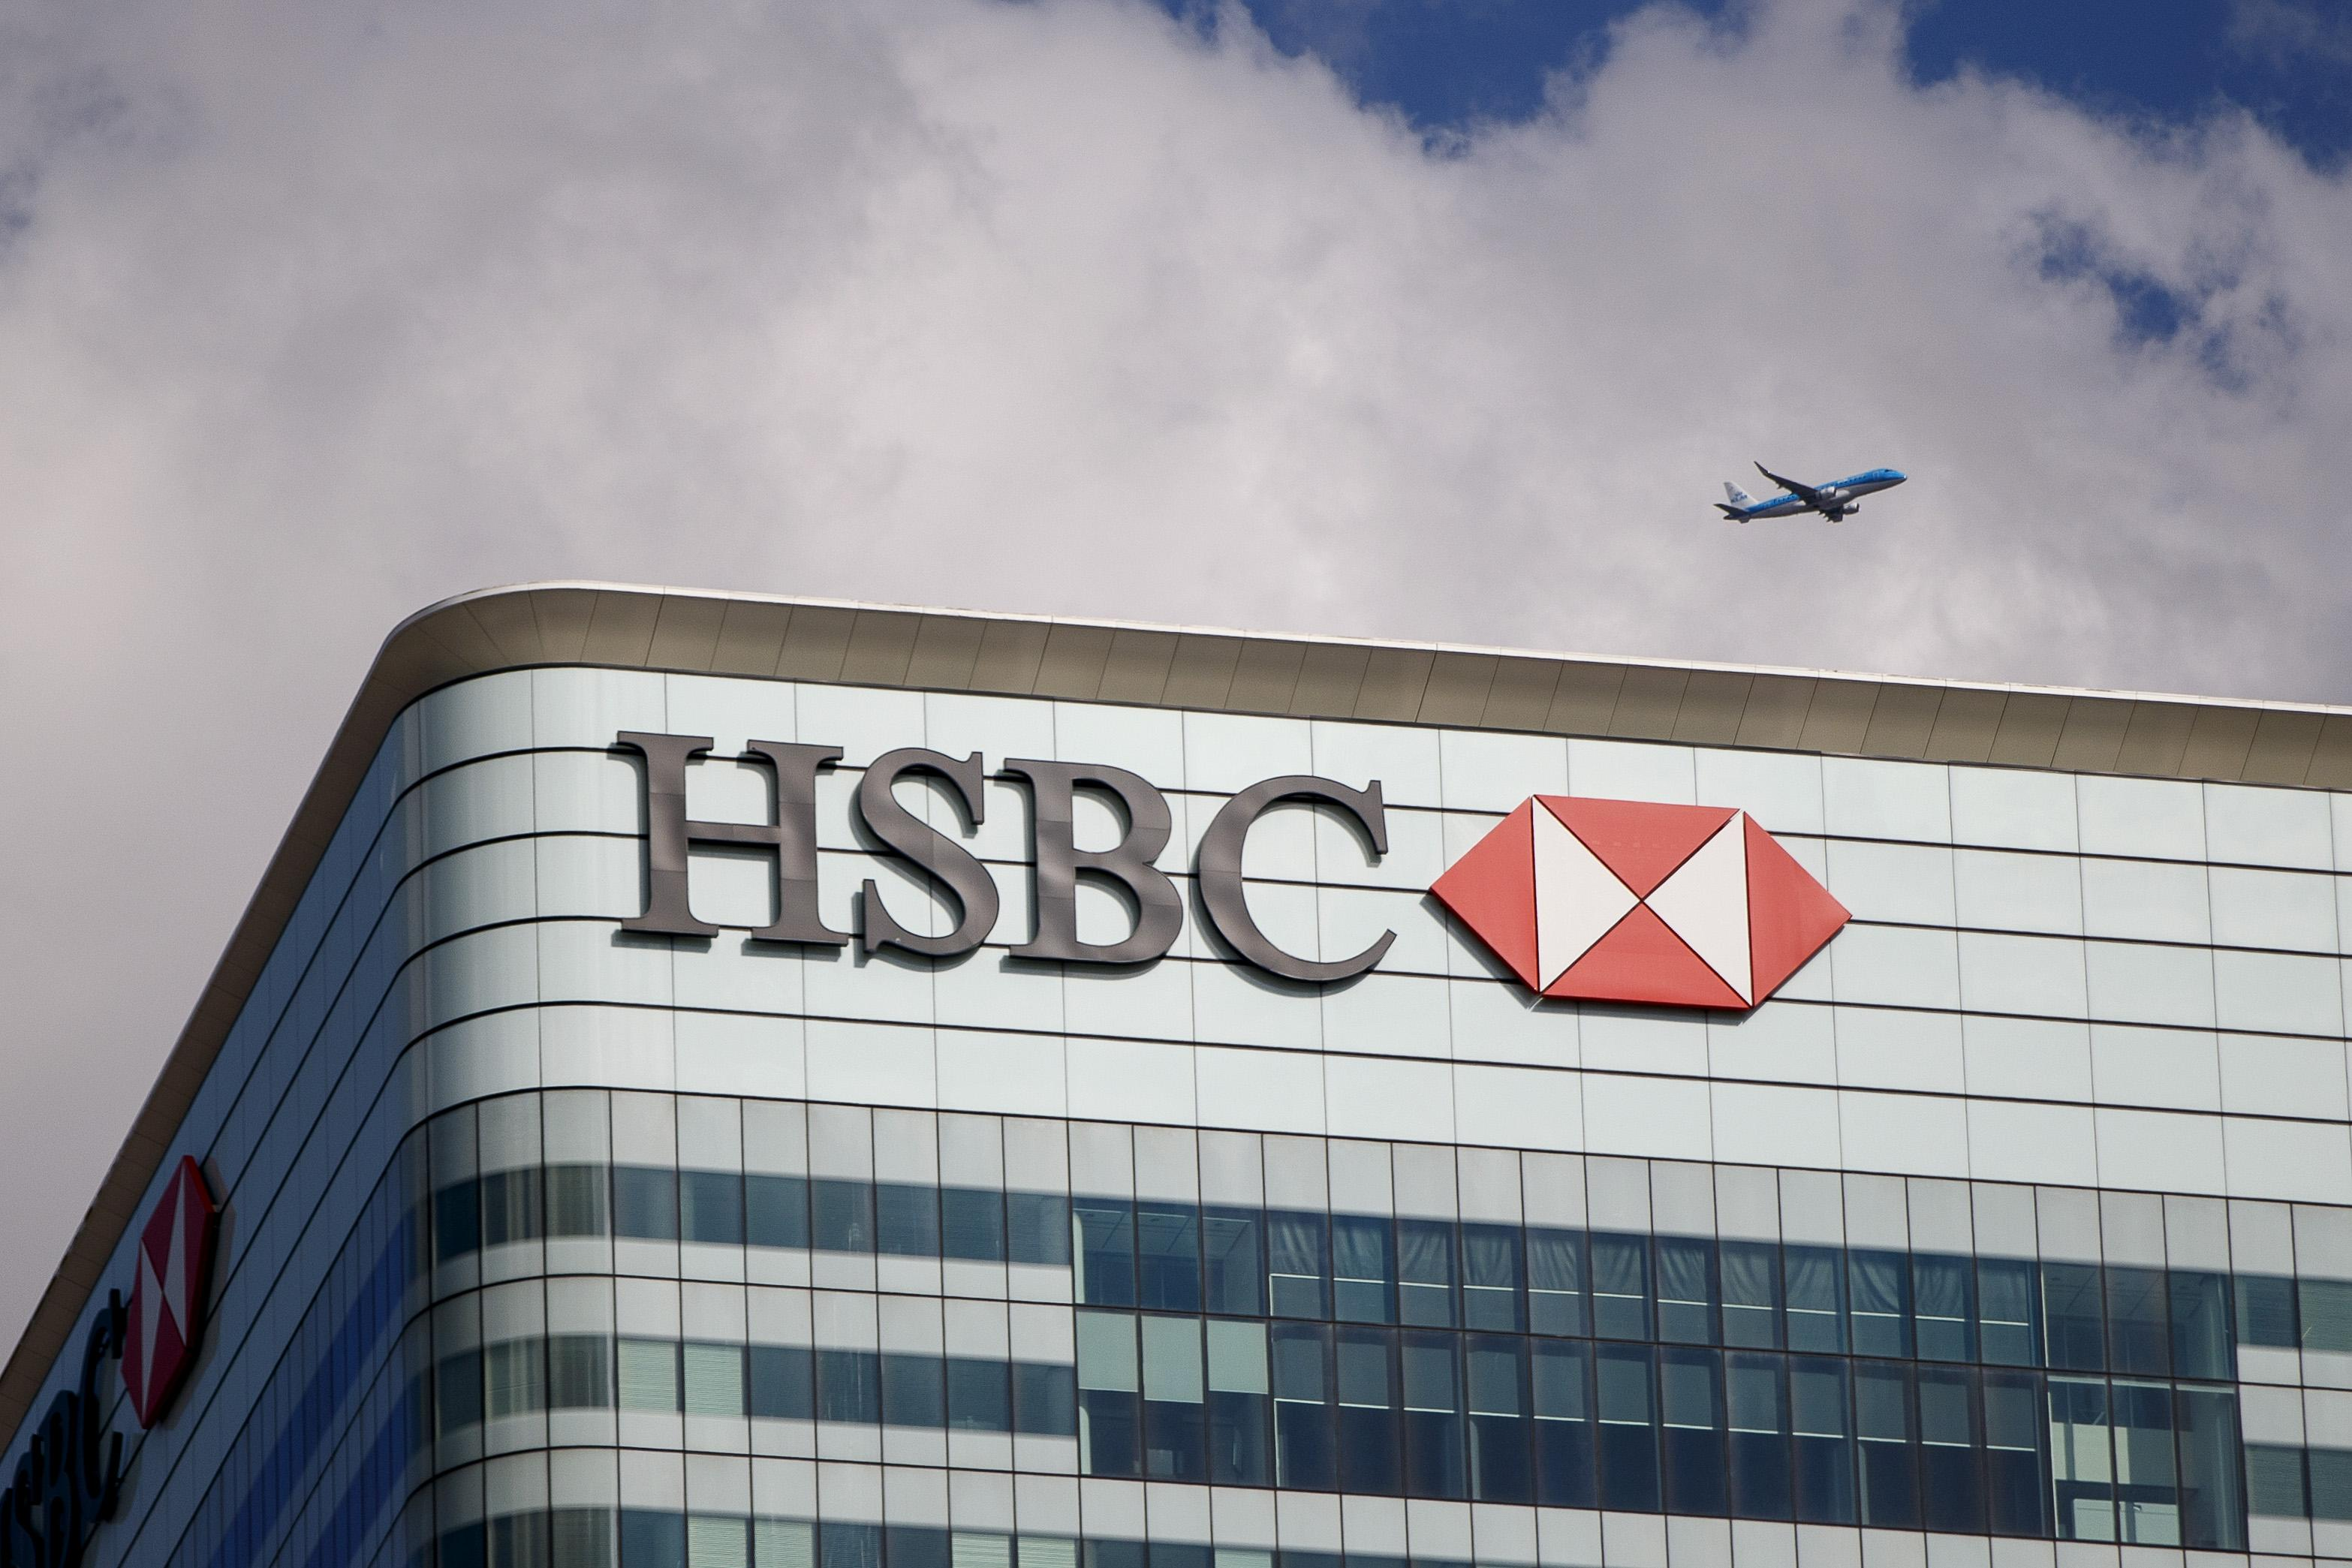 HSBC Layoffs 2019: 4,000 Lose Jobs After CEO's Exit